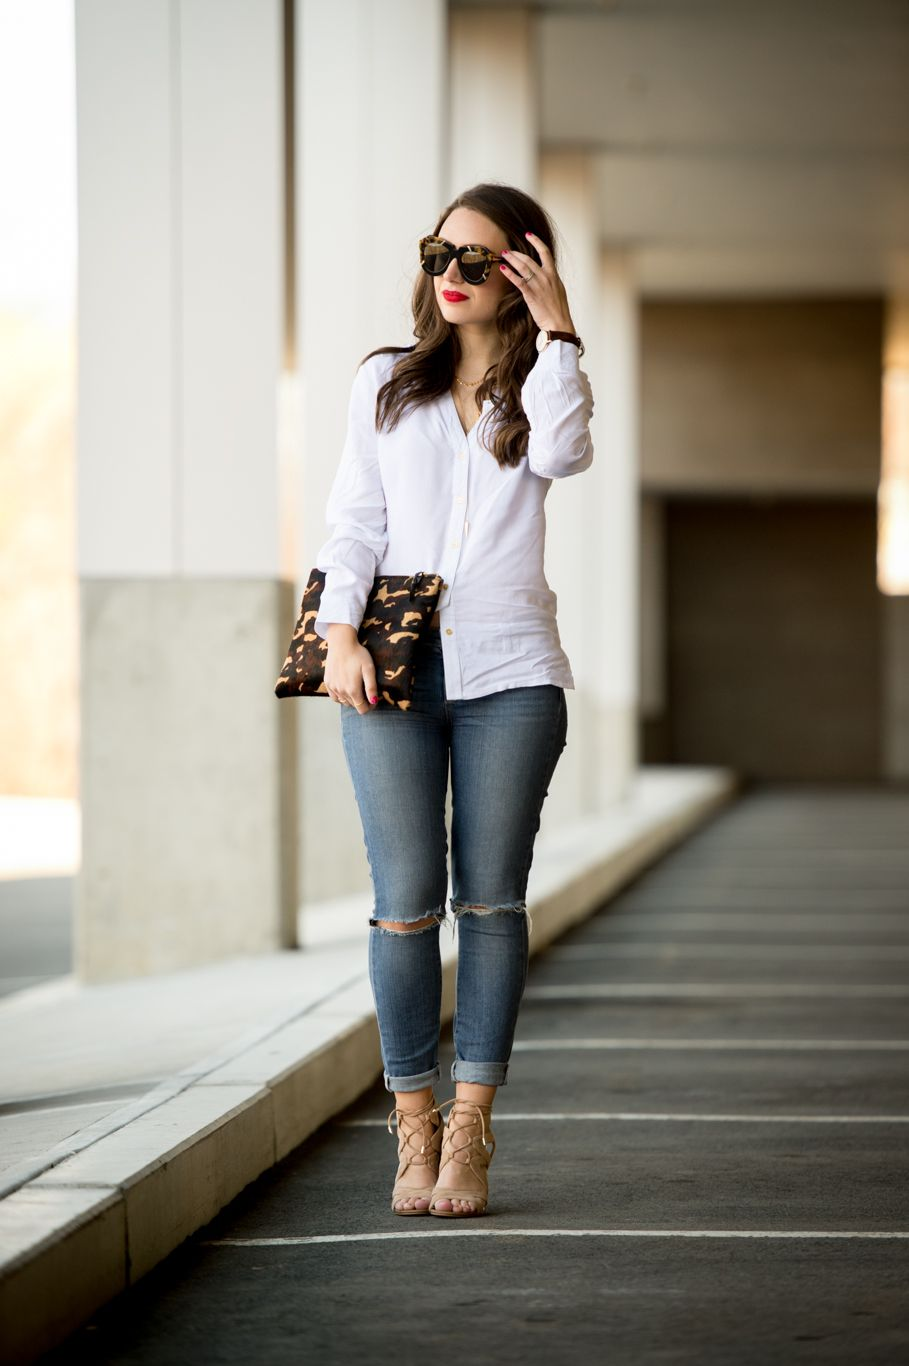 5dc456f012 Accessorizing a classic white shirt and blue jeans look with a camp clutch  and red lip for a chic effect